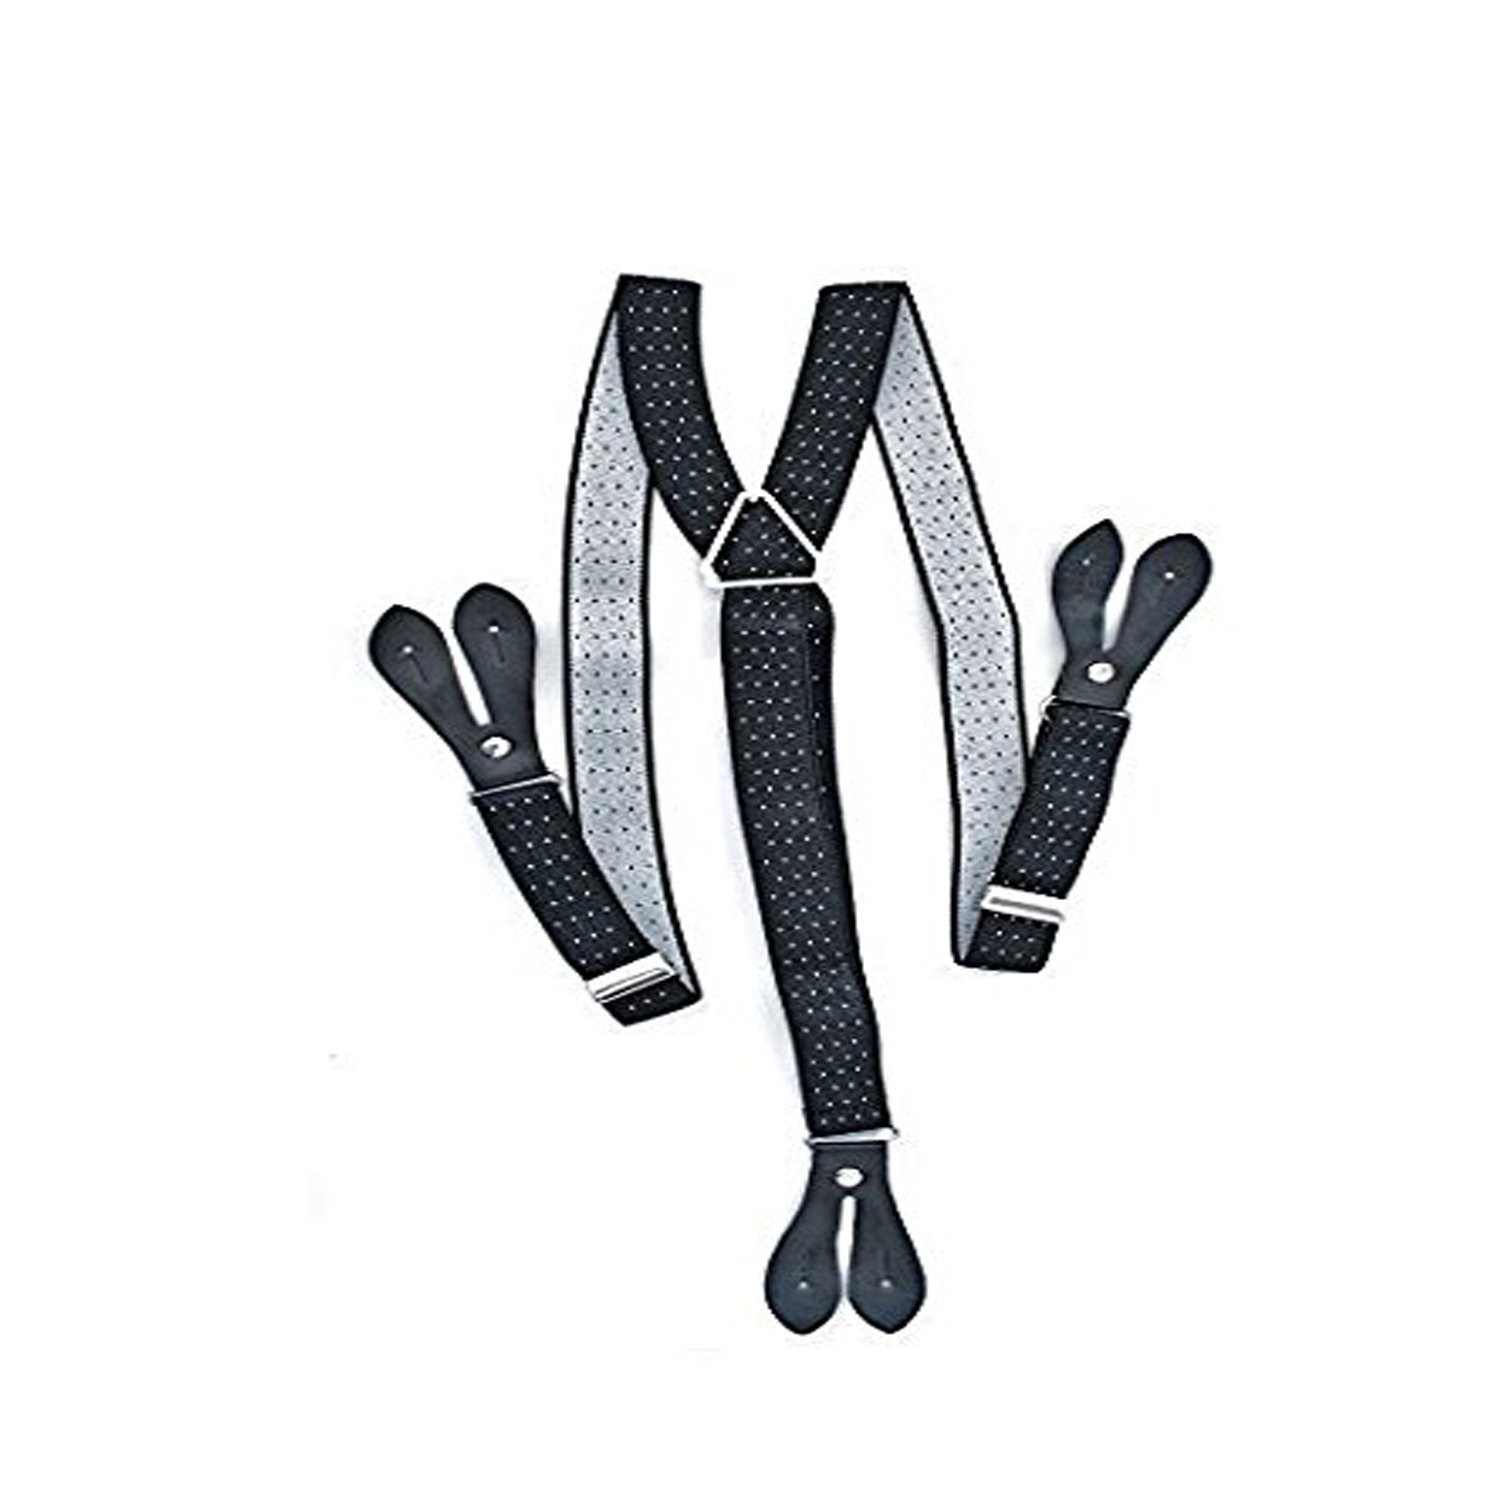 25mm Wide Adult Mens Adjustable Elastic Button Hole Suspenders Y Shape Braces